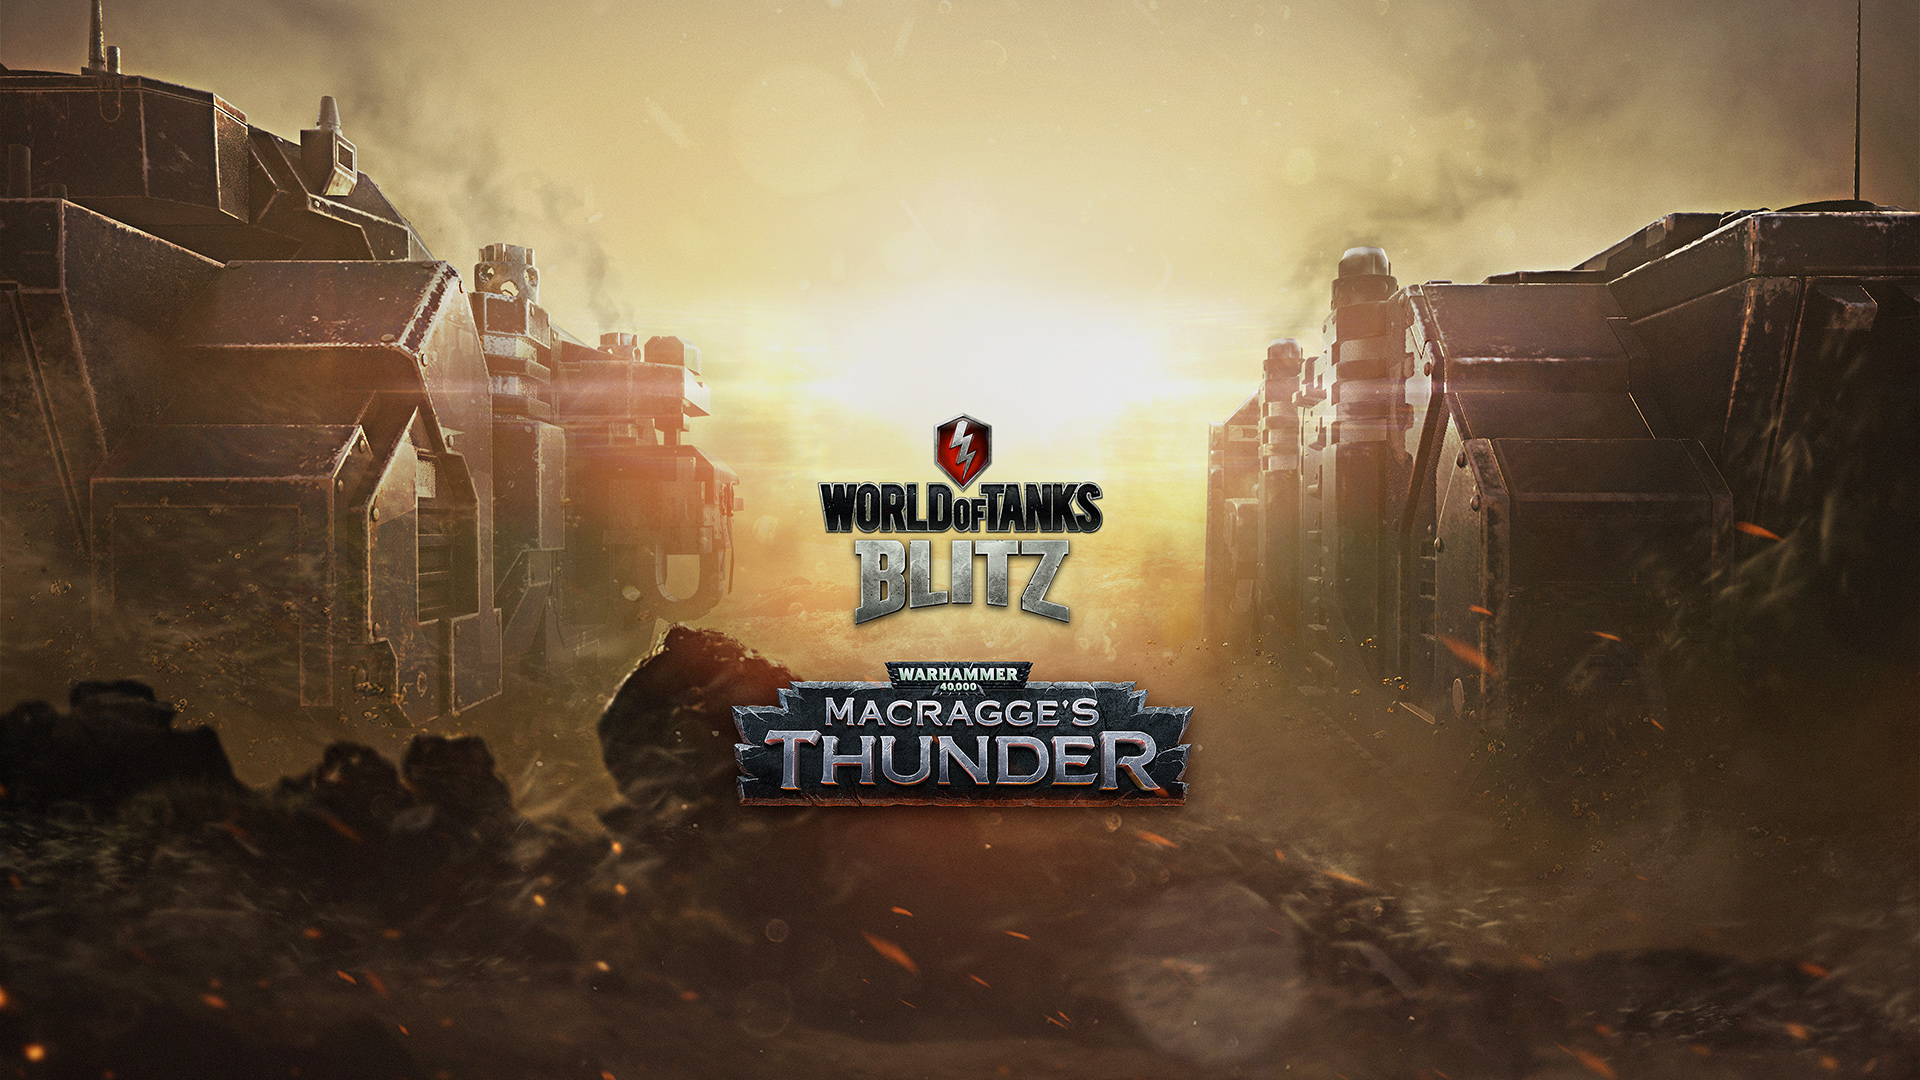 Warhammer 40,000 descends on World of Tanks Blitz - GameAxis